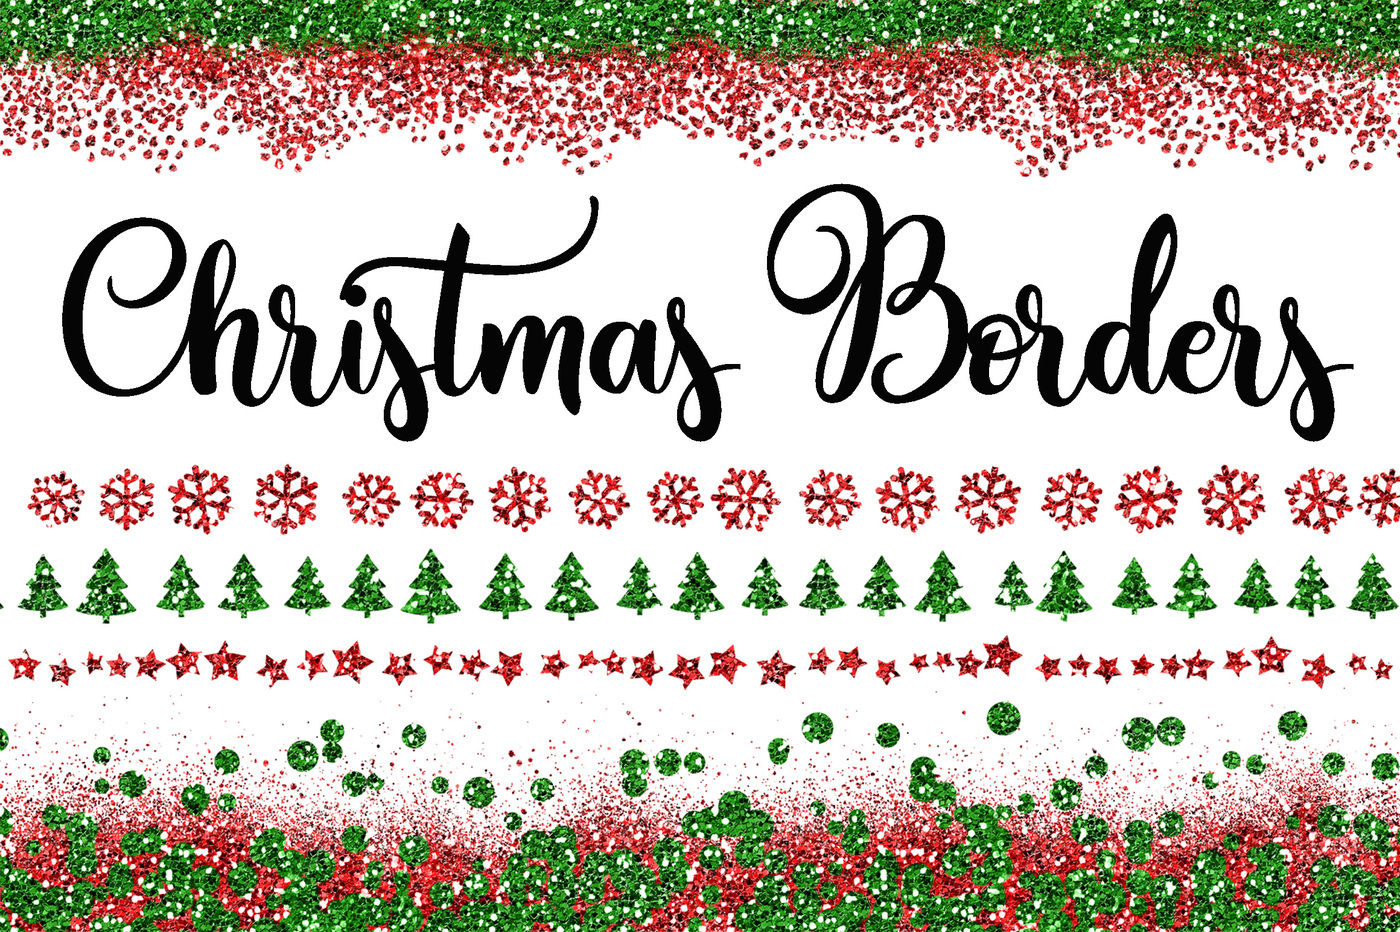 Christmas Glitter Borders Png Overlays Includes 40 Red And Green